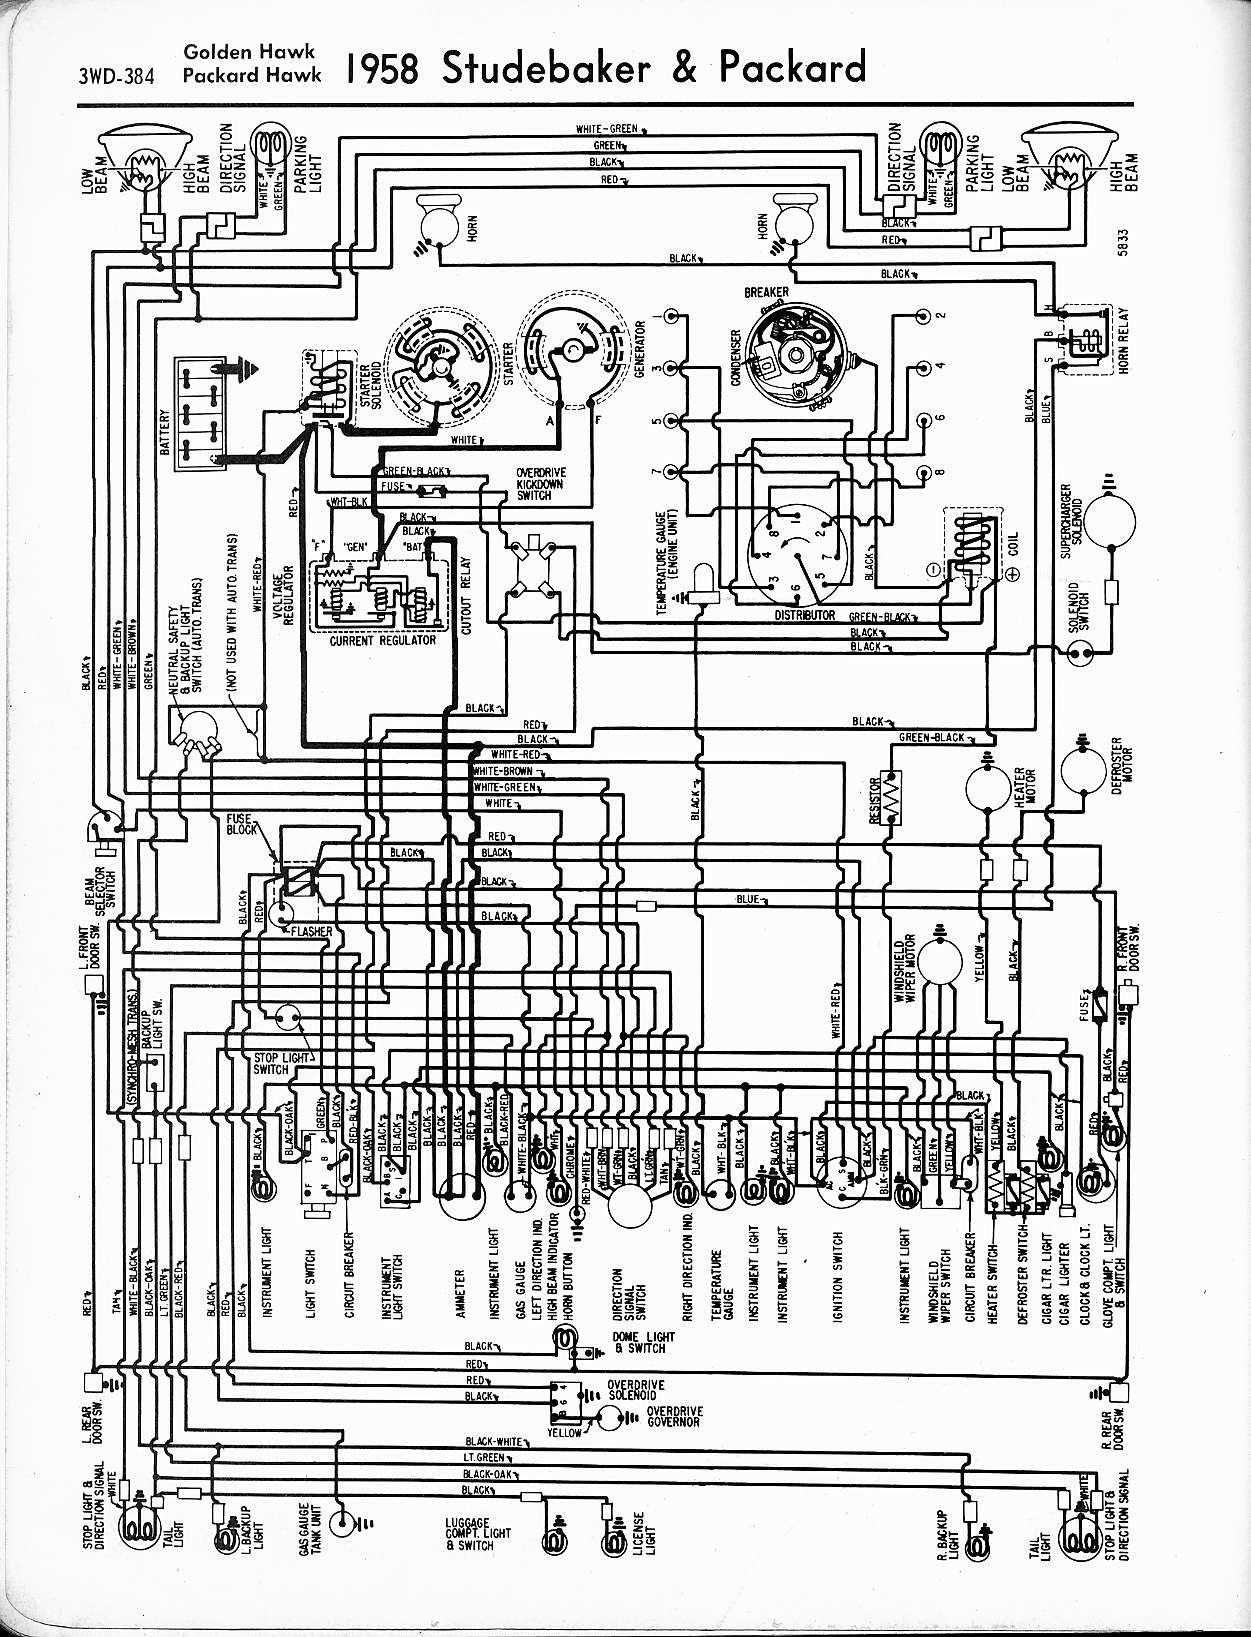 packard wiring diagram wiring schematics diagram rh enr green com maruti  wagon r electrical wiring diagram pdf Maruti Wagon R New Model